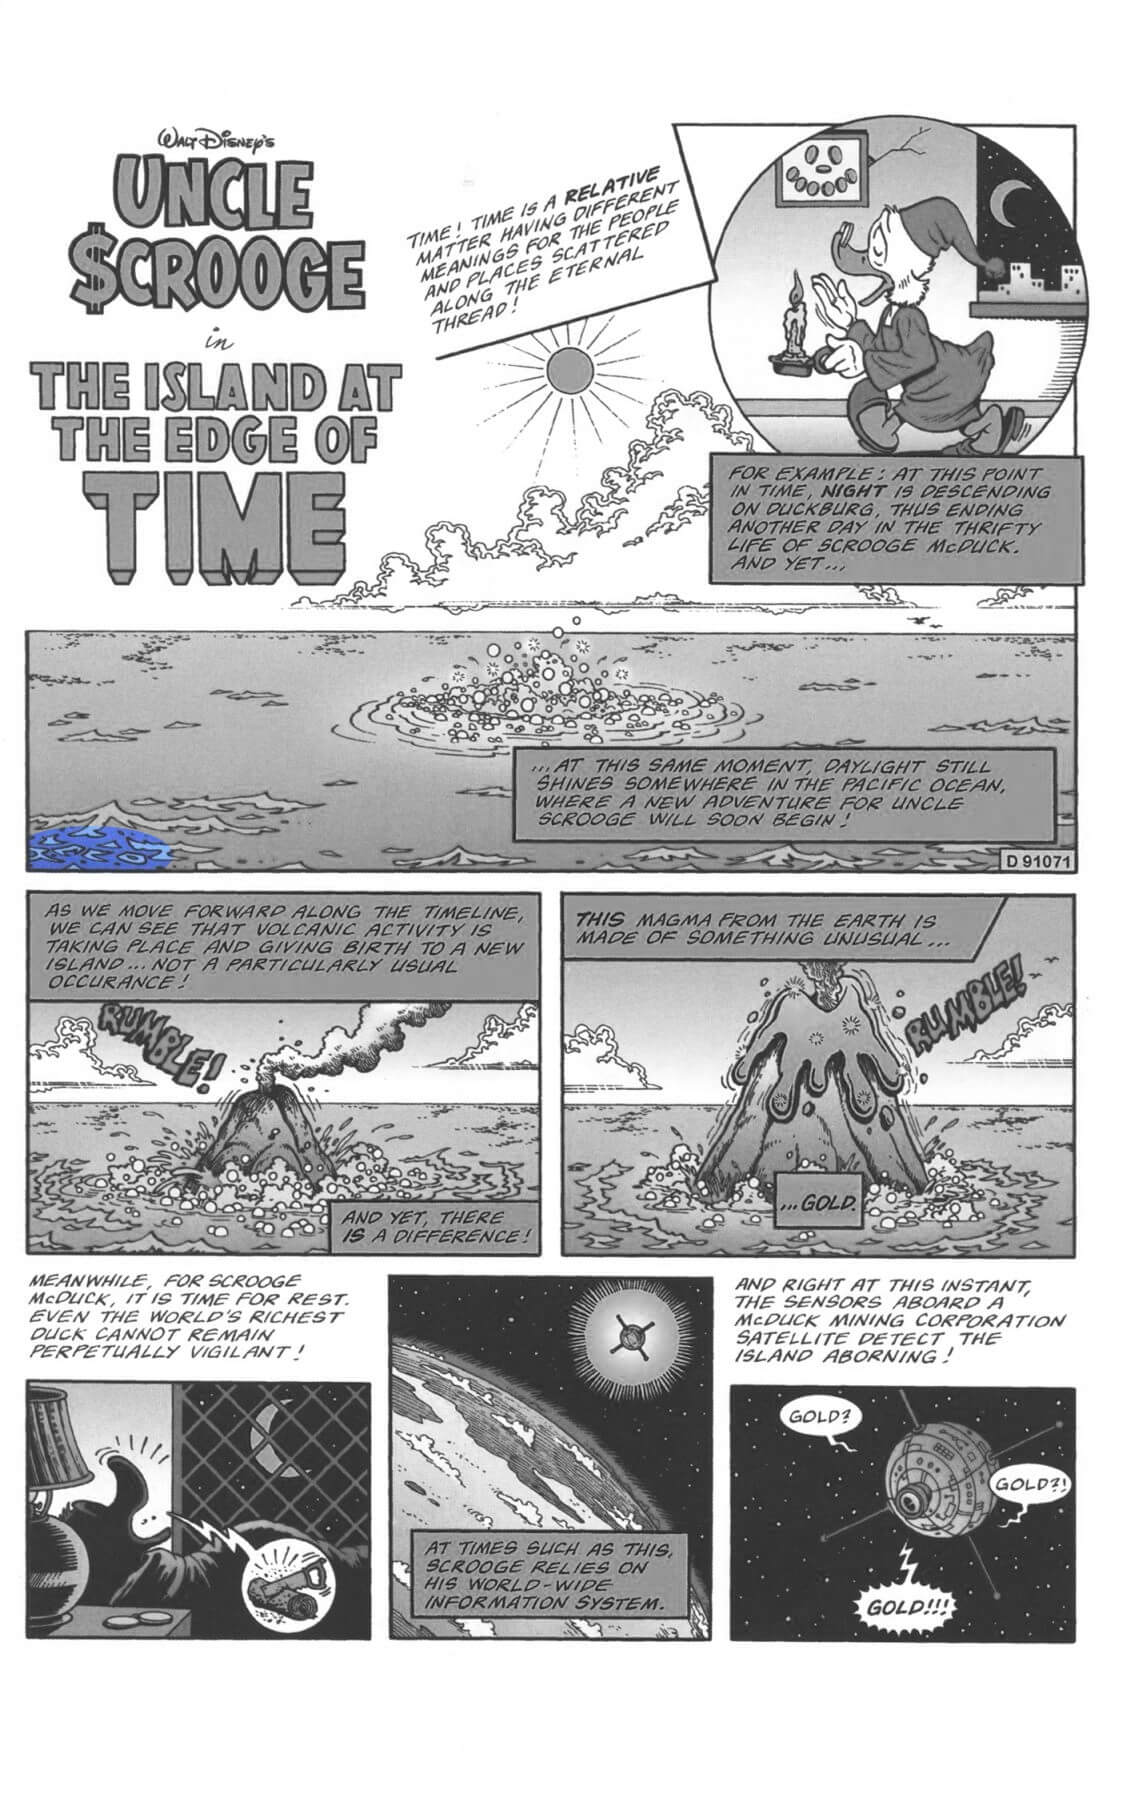 D.U.C.K in The Island at the Edge of Time first page